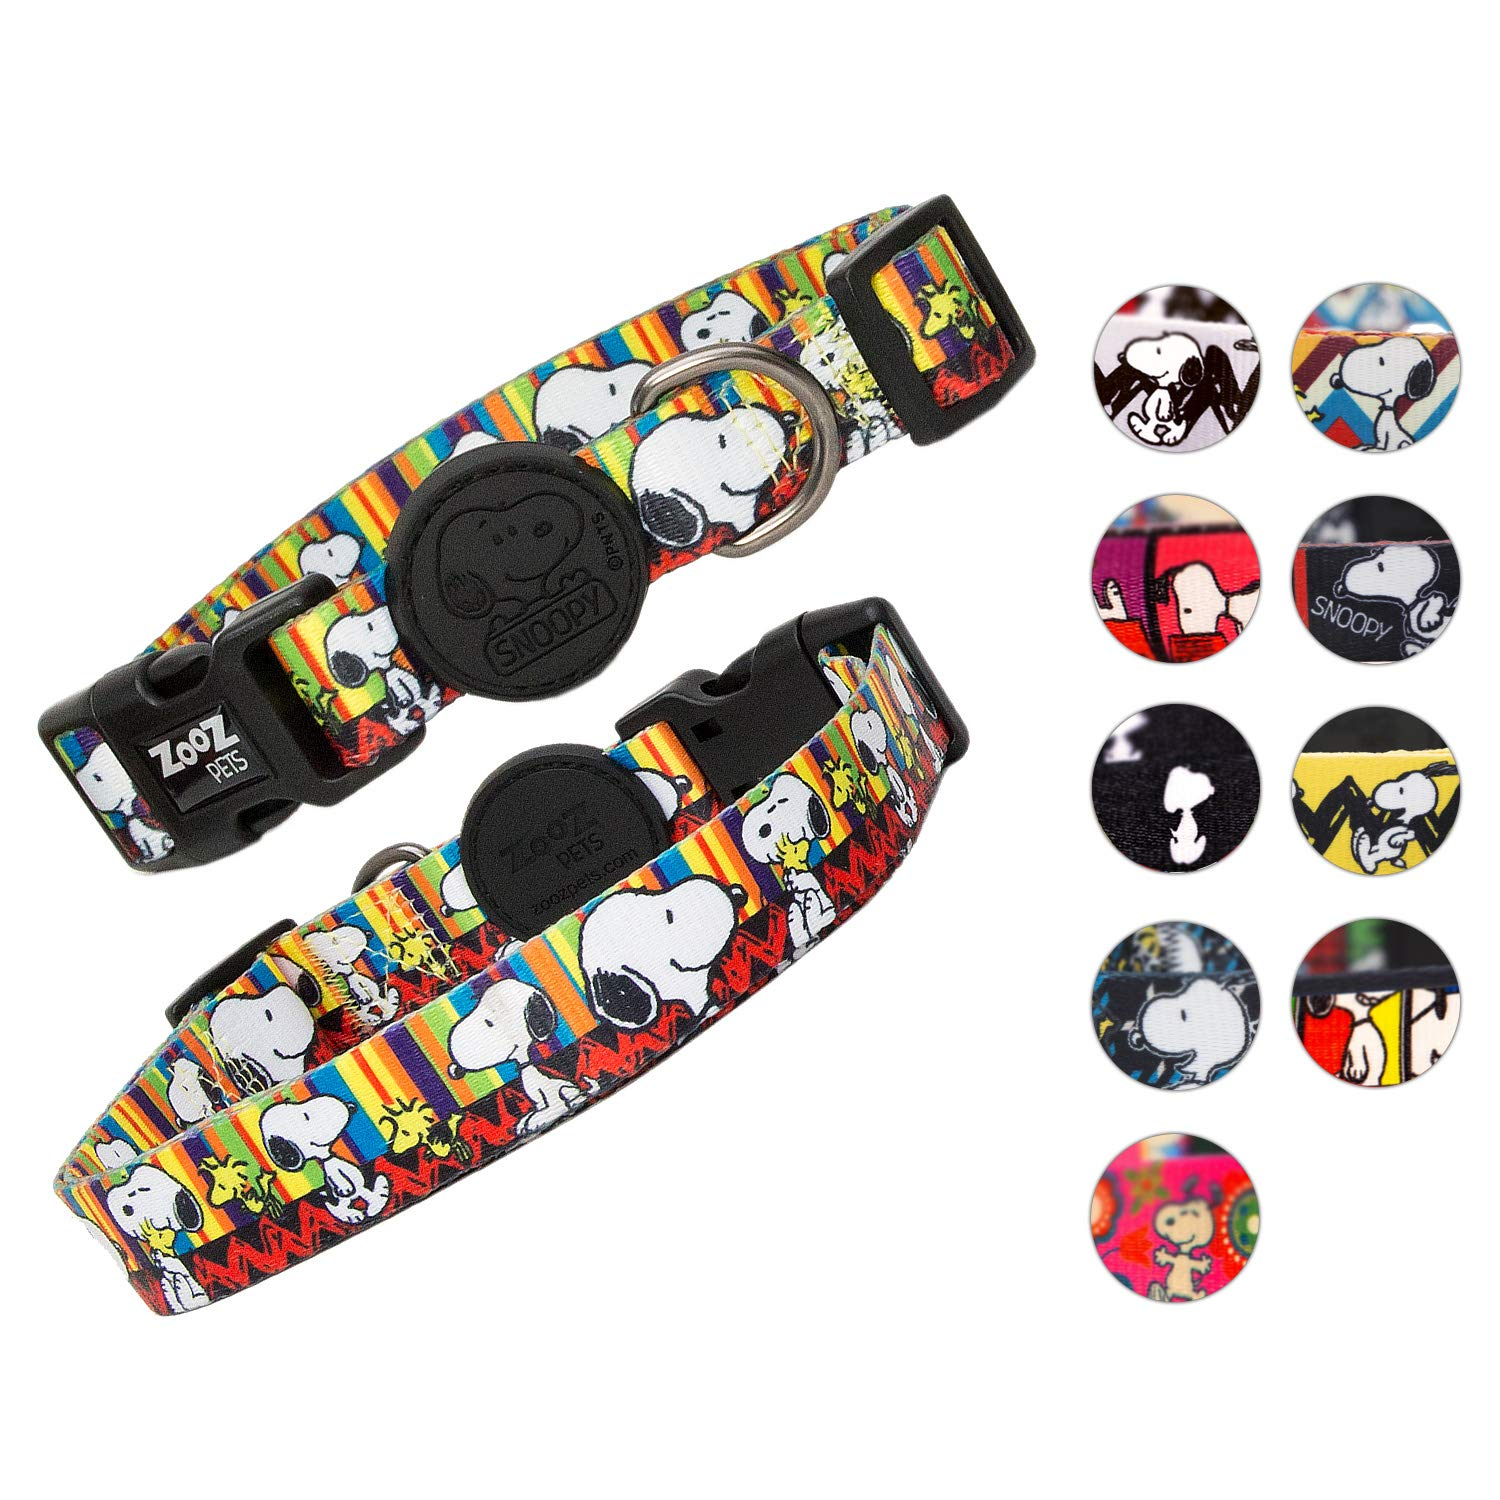 ZOOZ PETS Snoopy Dog Collar - Adjustable Dog Collars (Non Slip Collar) - High - Quality & Water Resistant (NO Stink Collar) - Extra Safety Strong Buckle - 10 Unique Designs of Dogs